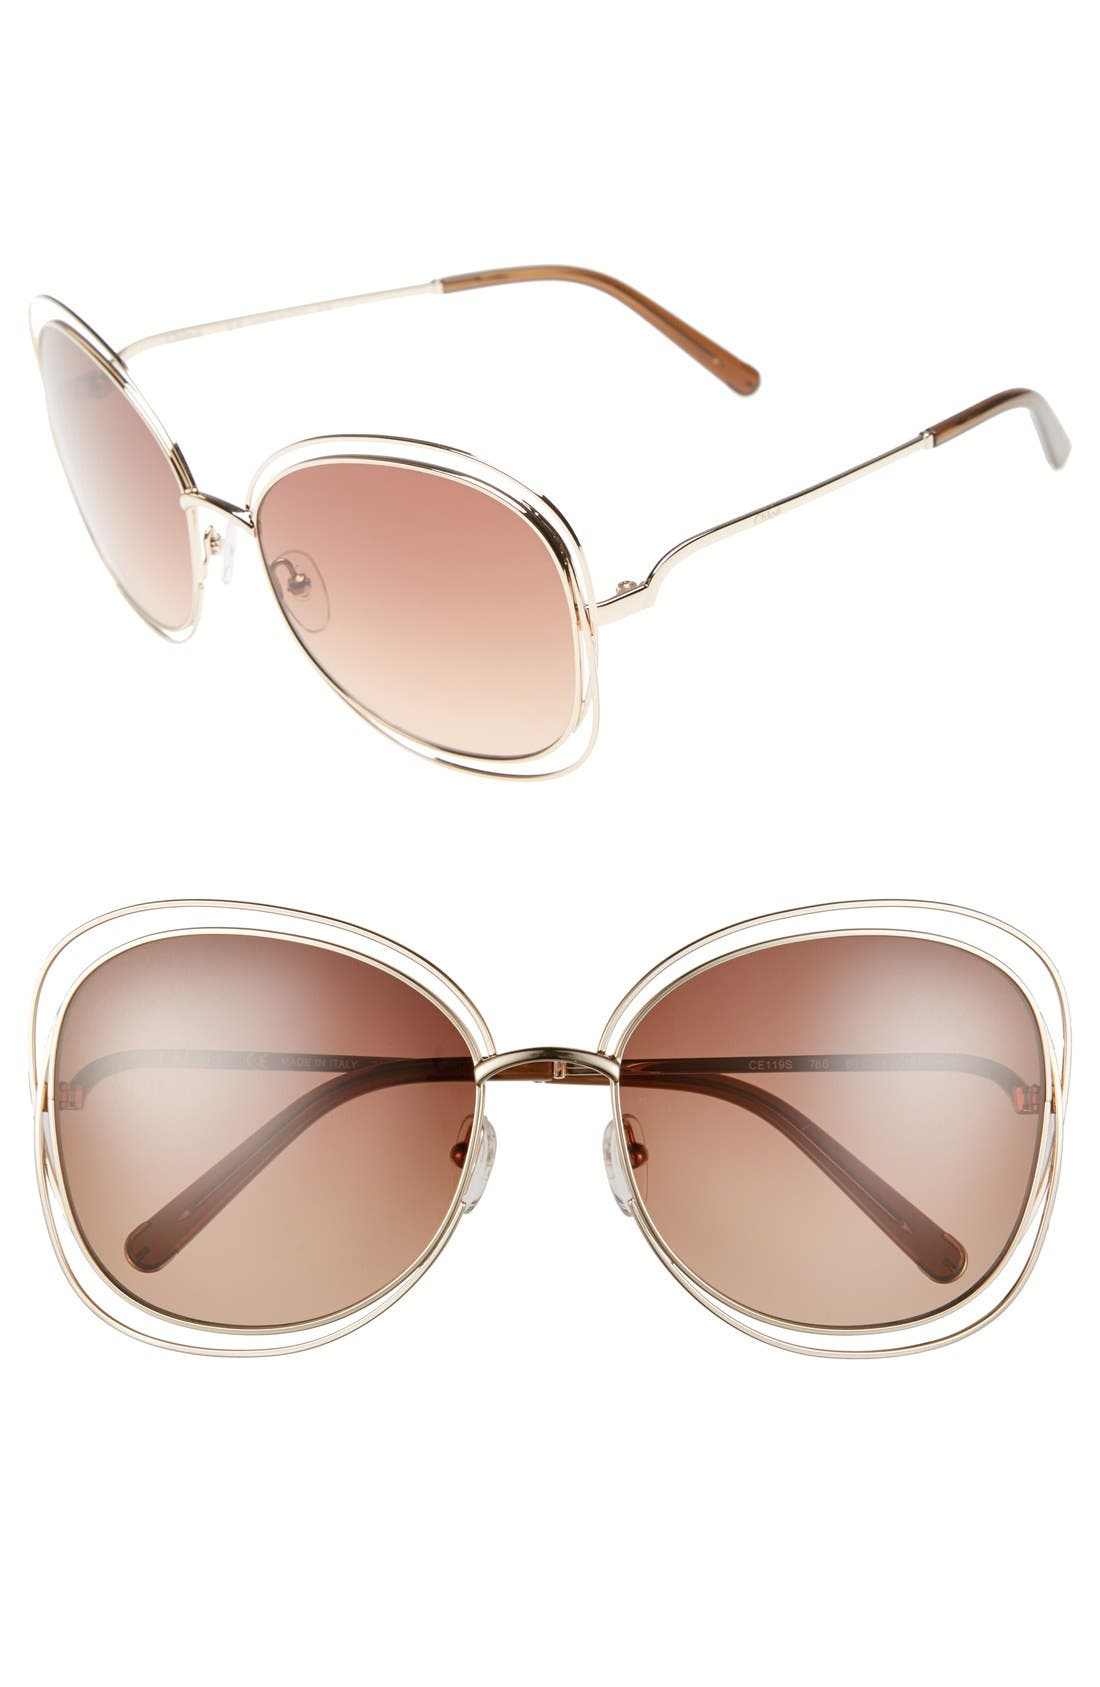 CHLOÉ Carlina 60mm Gradient Les Sunglasses, Main, color, ROSE GOLD/ BROWN